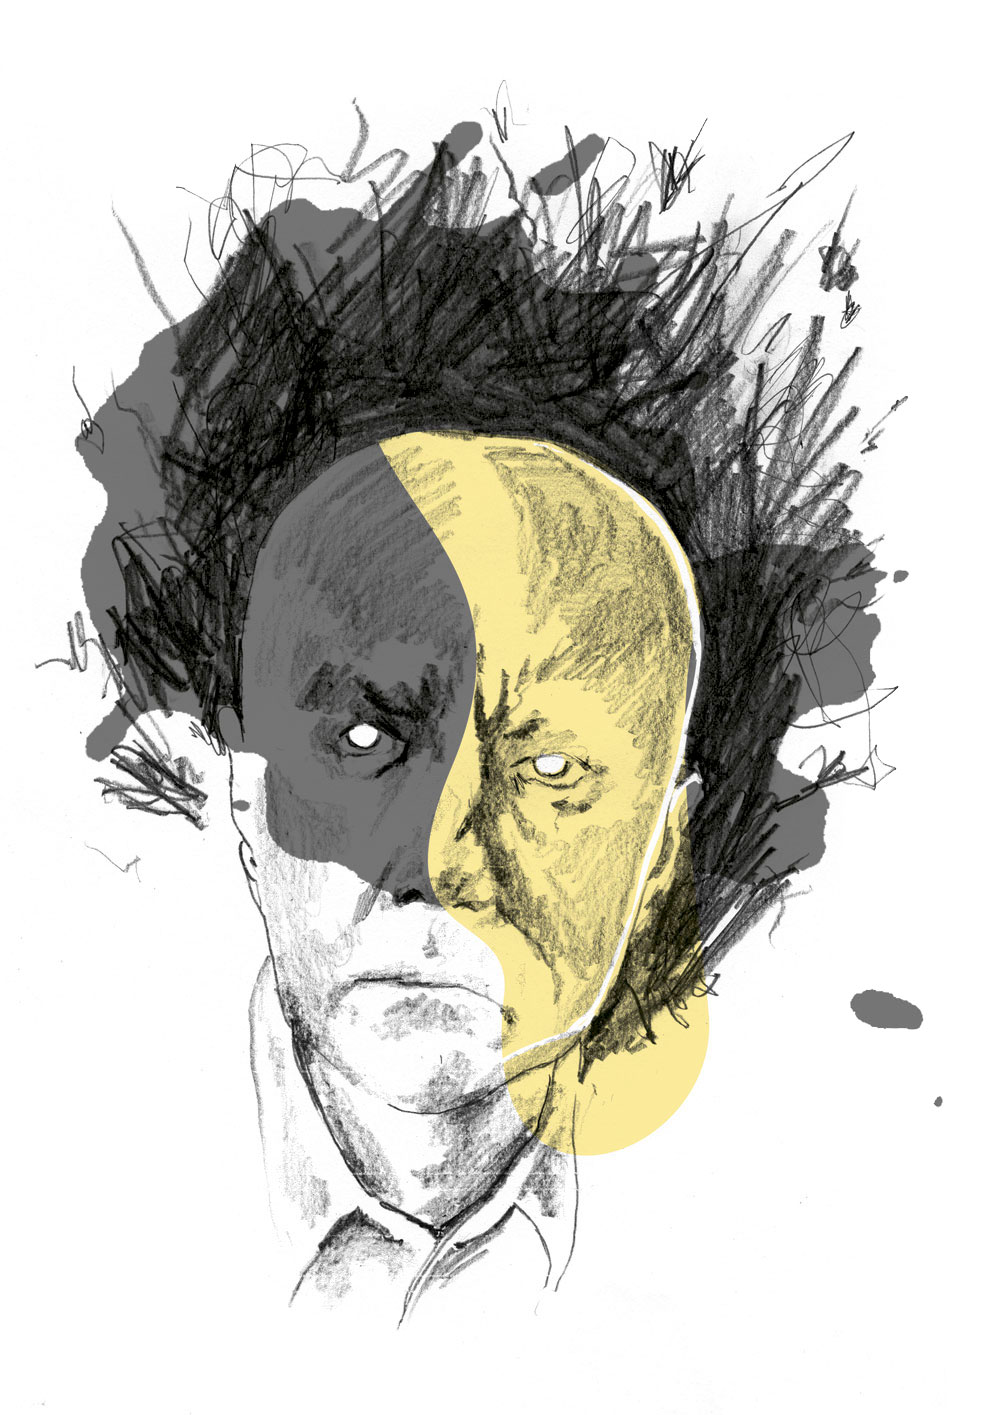 Illustration of Irvine Welsh by Sylvia Stølan for Sorgenfri